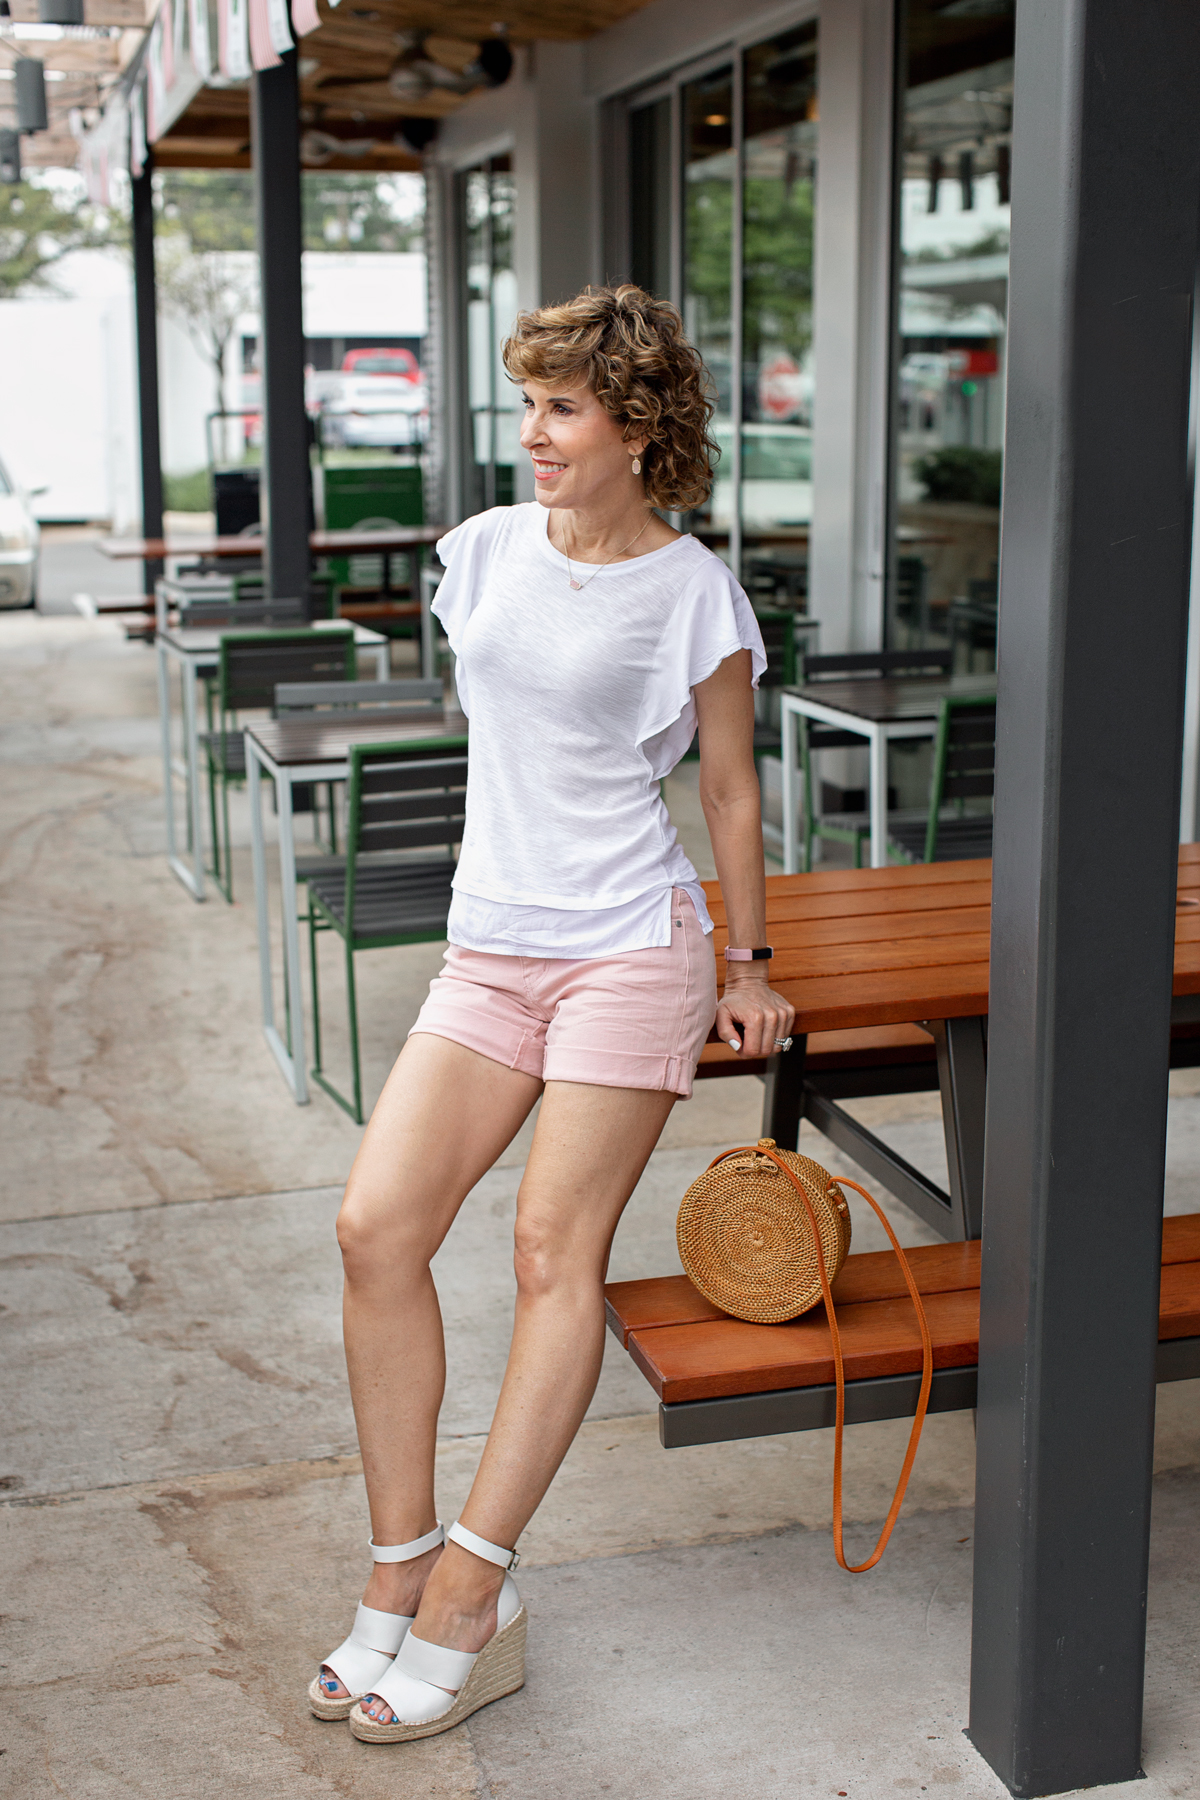 middle-aged legs, middle aged legs, empty nest, empty nester, empty nesters, self care for empty nesters, leg care, varicose veins, exercises for legs, exercises to tone legs, hide varicose veins, tone legs, leg makeup, fitbit alta, caslon blush shorts, Caslon denim shorts, Caslon pink shorts, caslon boyfriend shorts, vince camuto ruffle sleeve top, ruffle sleeve top, vince camuto tee, circle straw handbag, circle straw purse, leg health, help for varicose veins, cellulite, help for cellulite, cellulite products